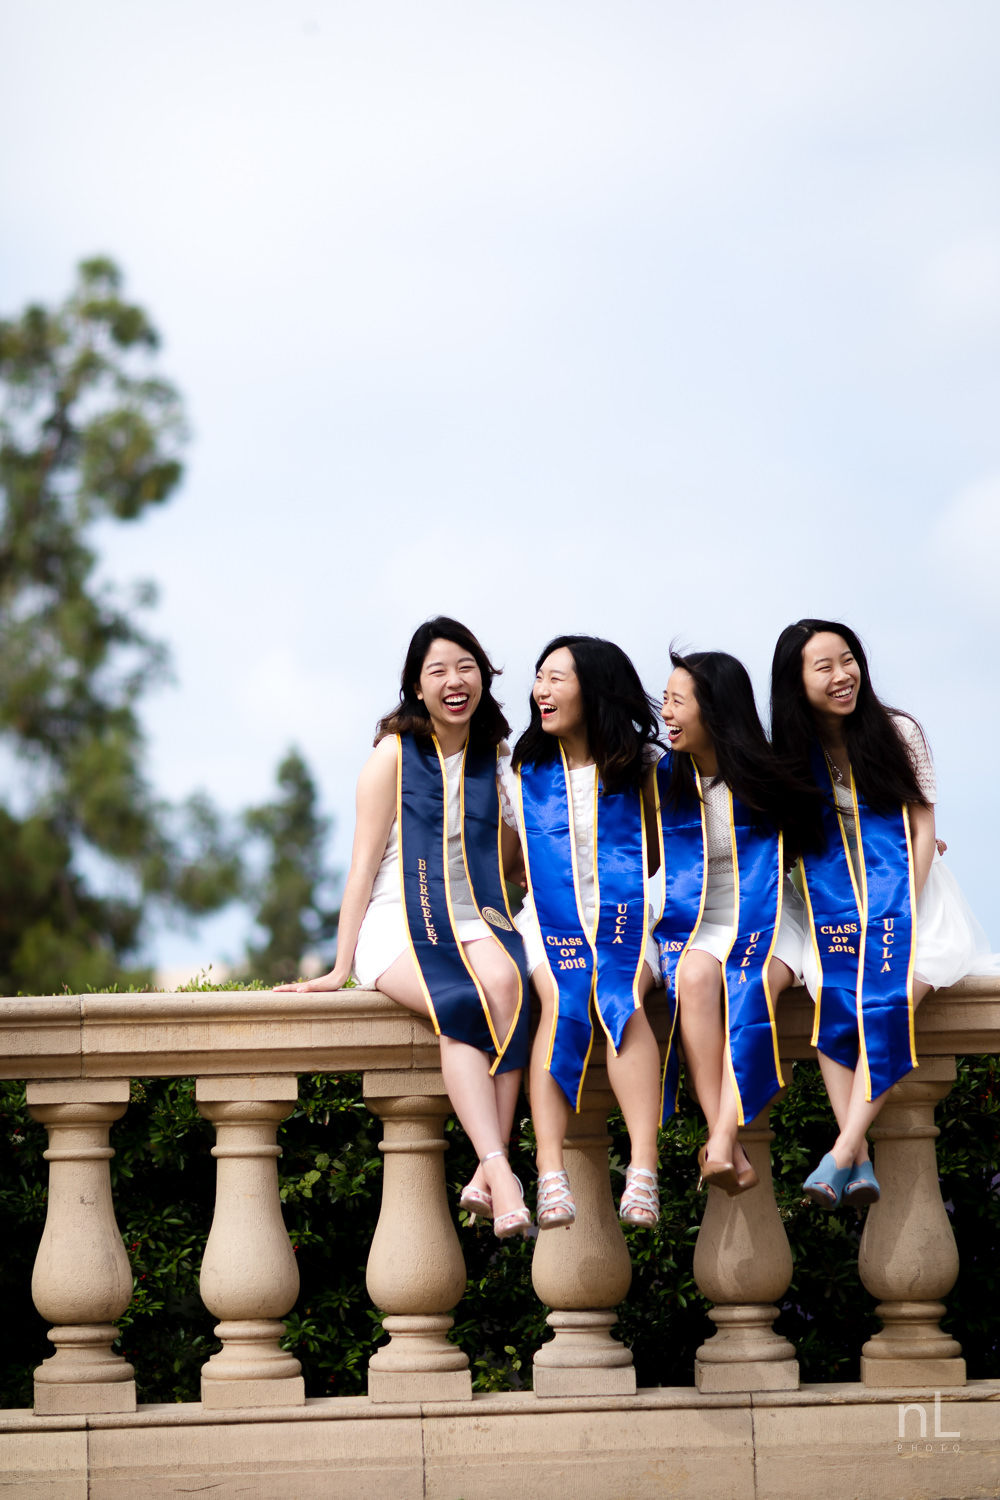 los-angeles-ucla-senior-graduation-portraits-2-8.jpg